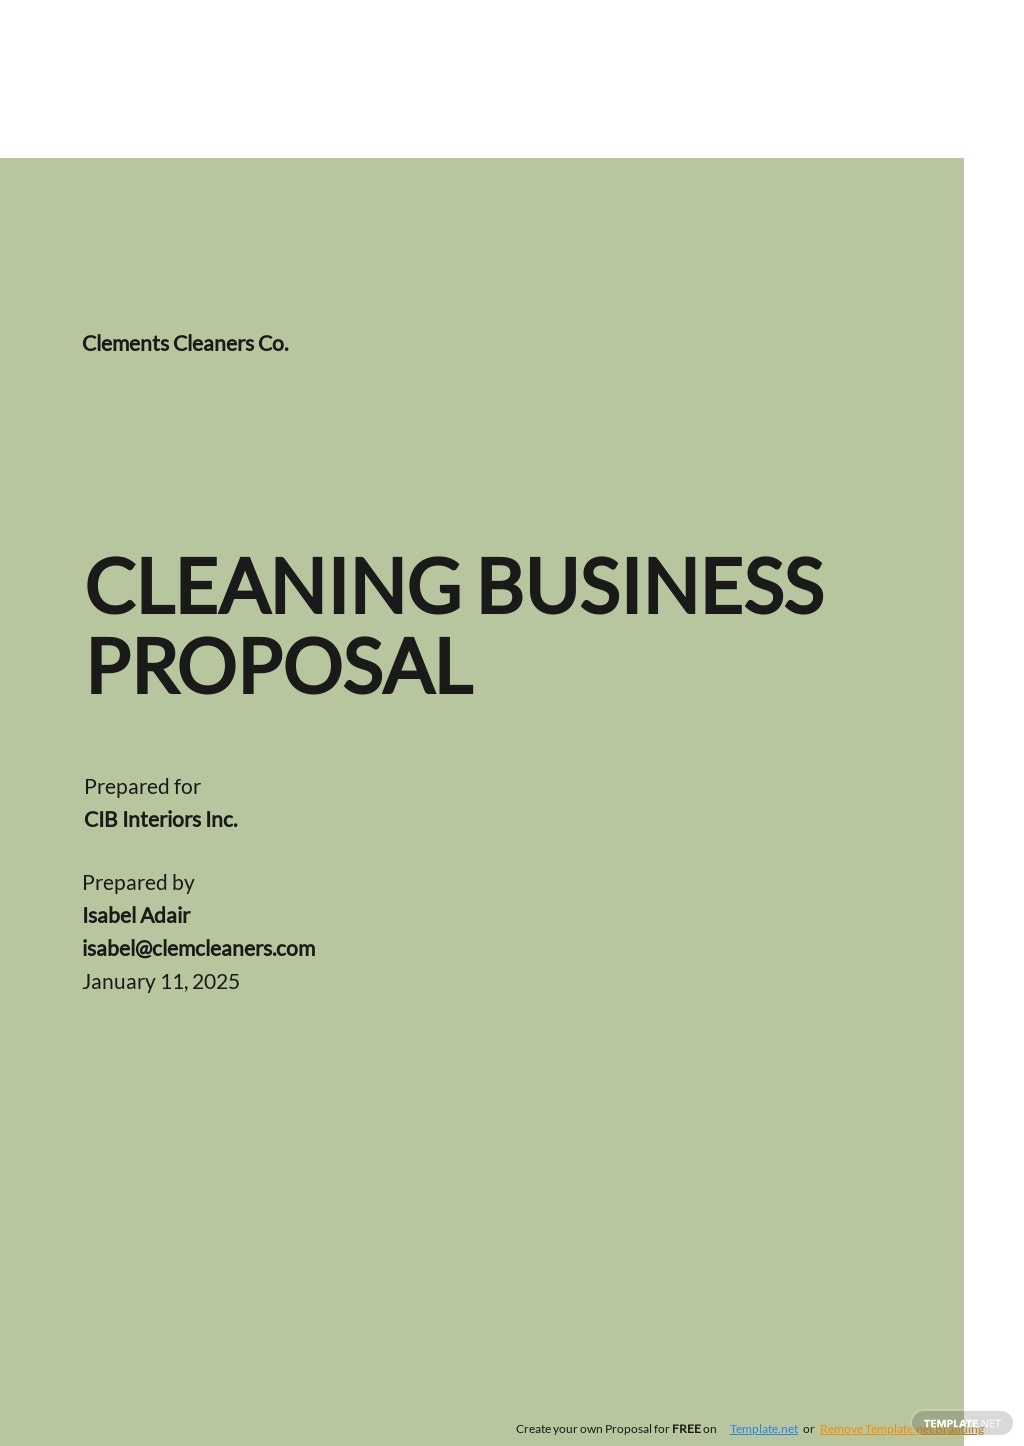 Sample Cleaning Business Proposal Template.jpe